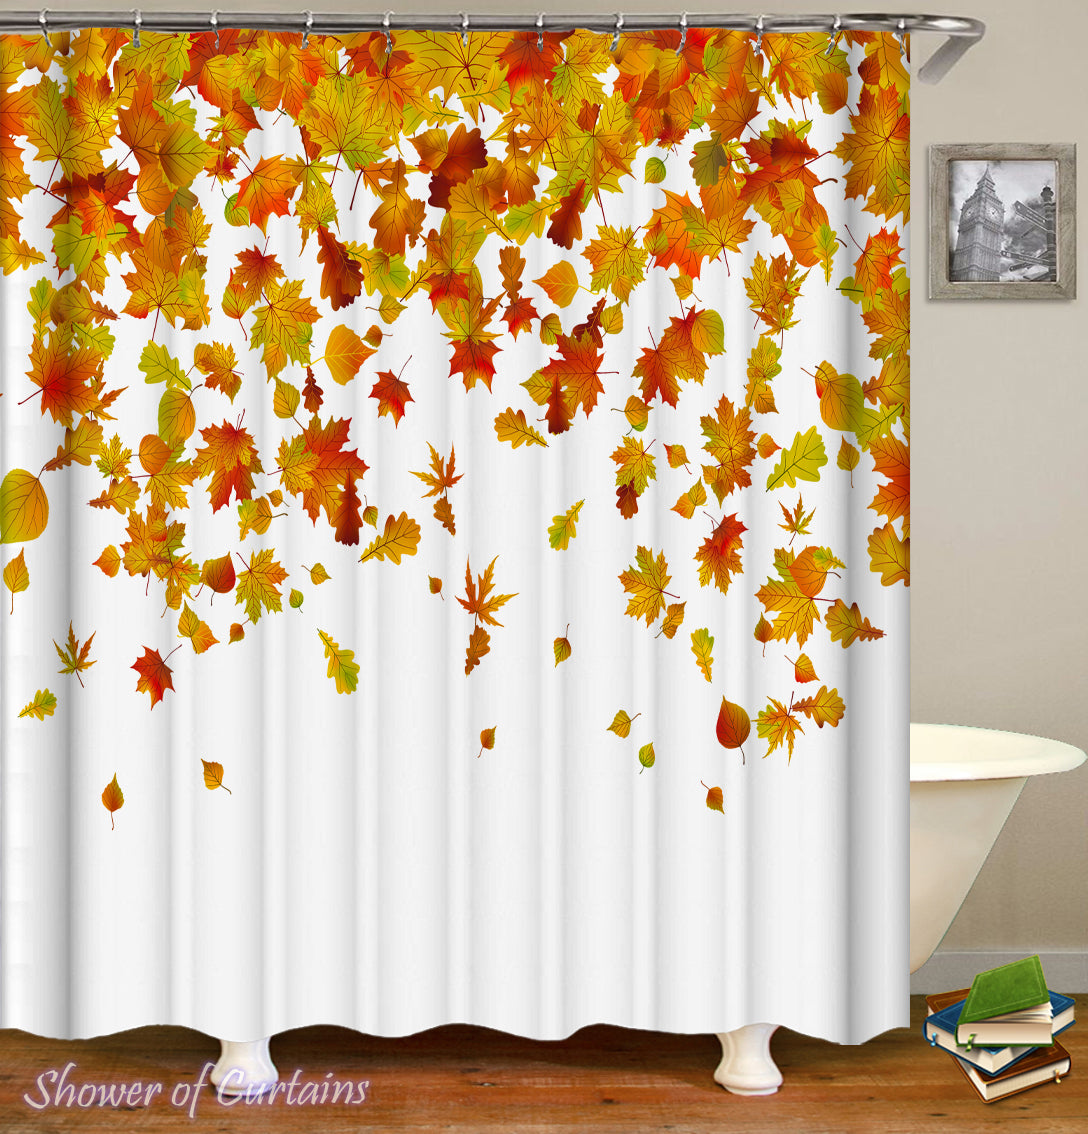 Shower Curtains Autumn Leaves Shower Of Curtains